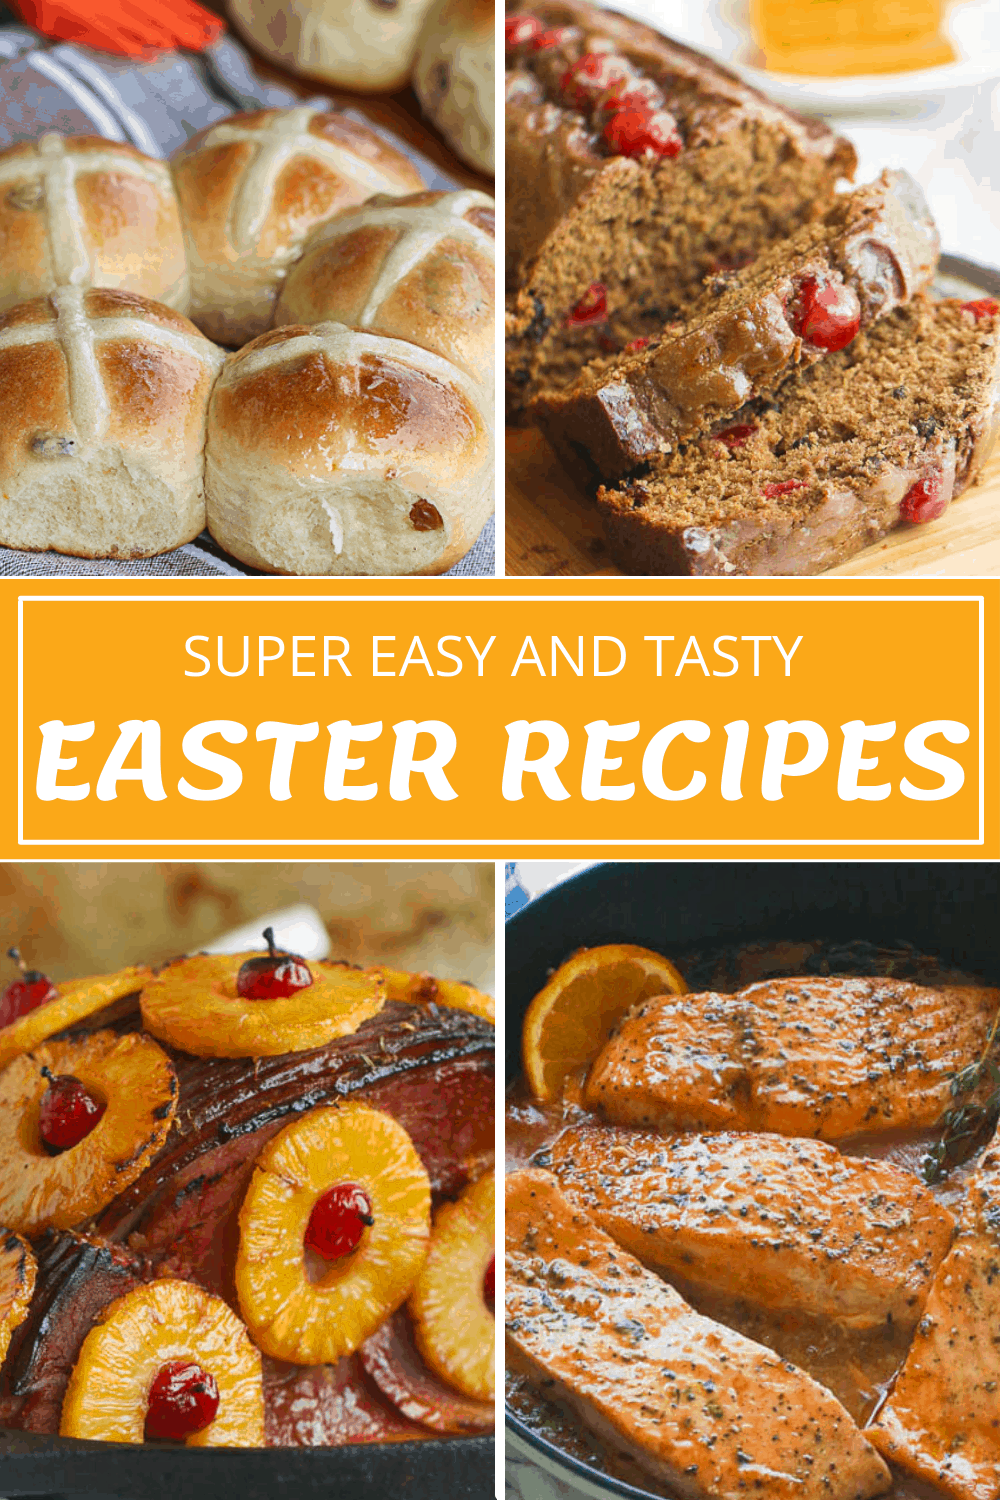 Easter Recipe Collage